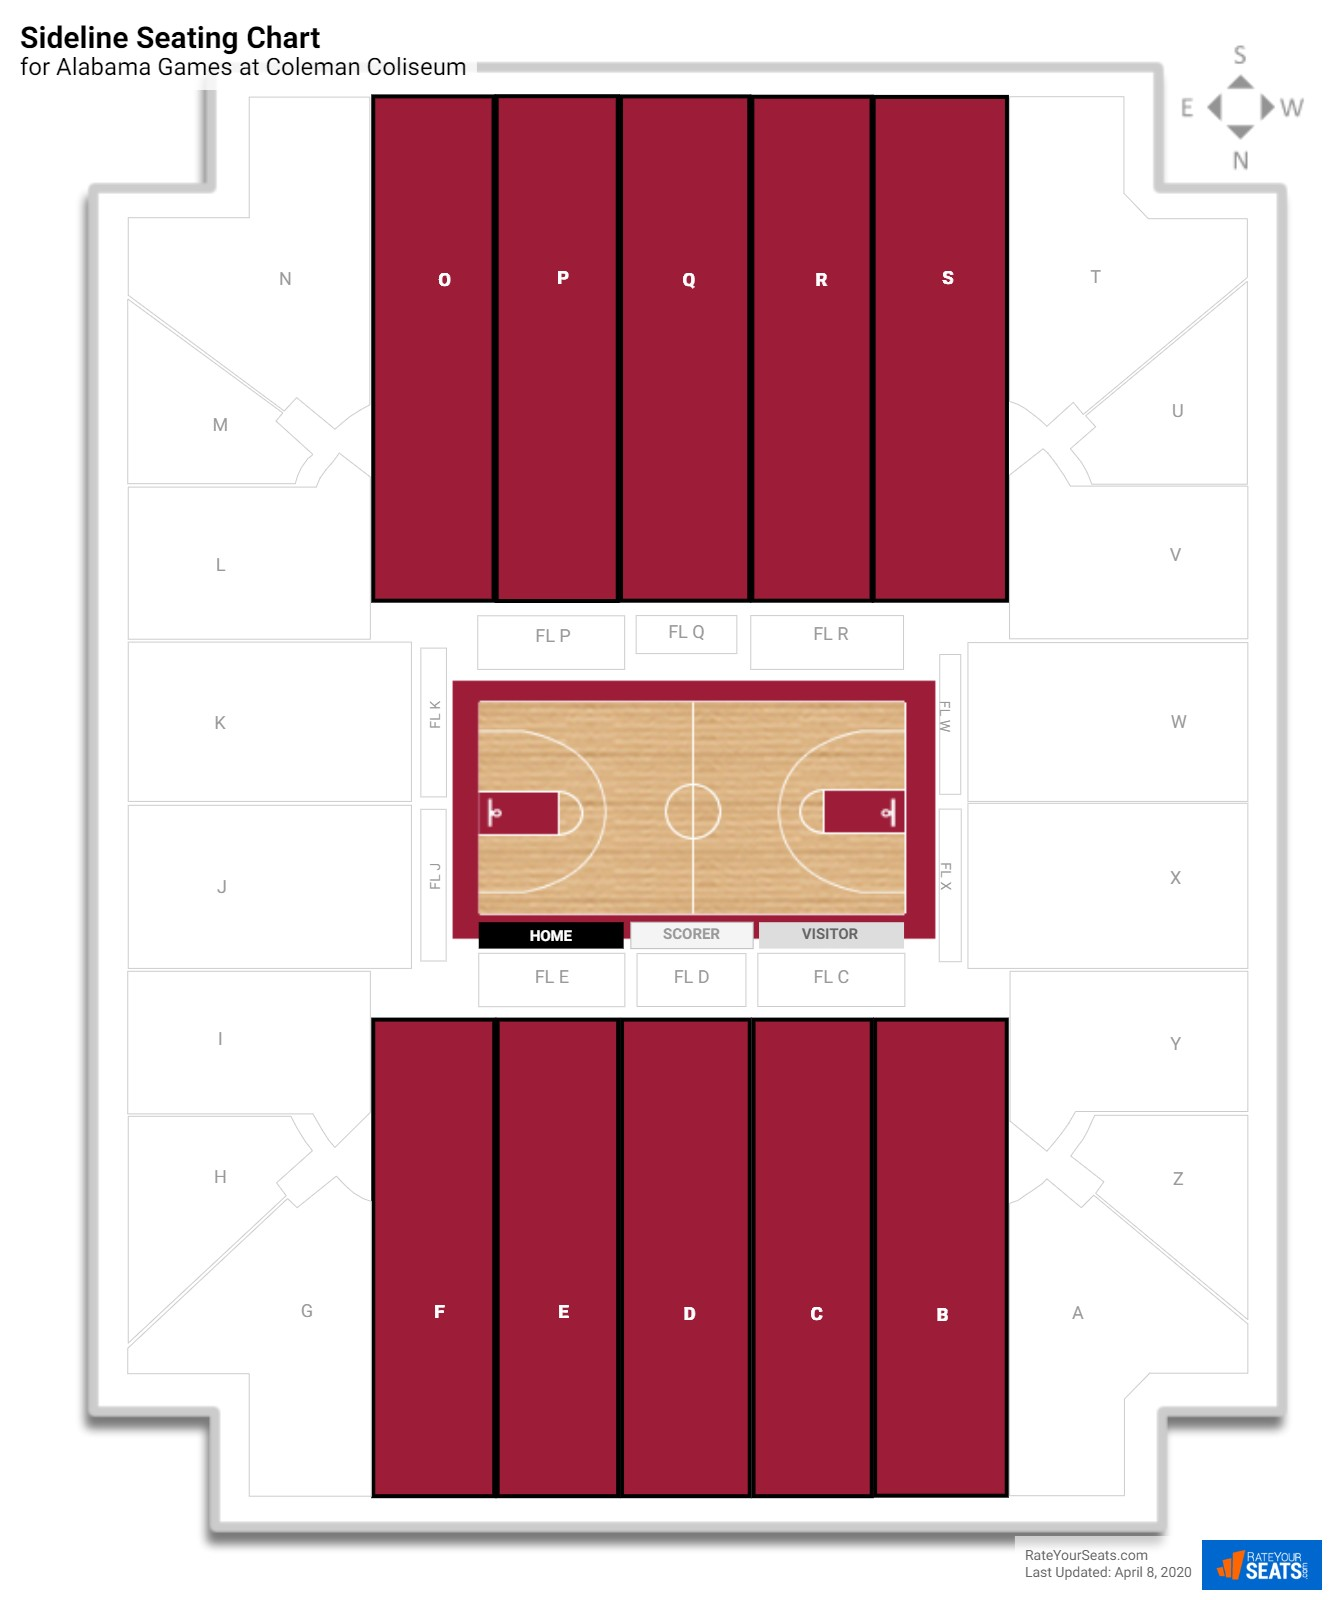 Coleman Coliseum Alabama Seating Guide Rateyourseats Com